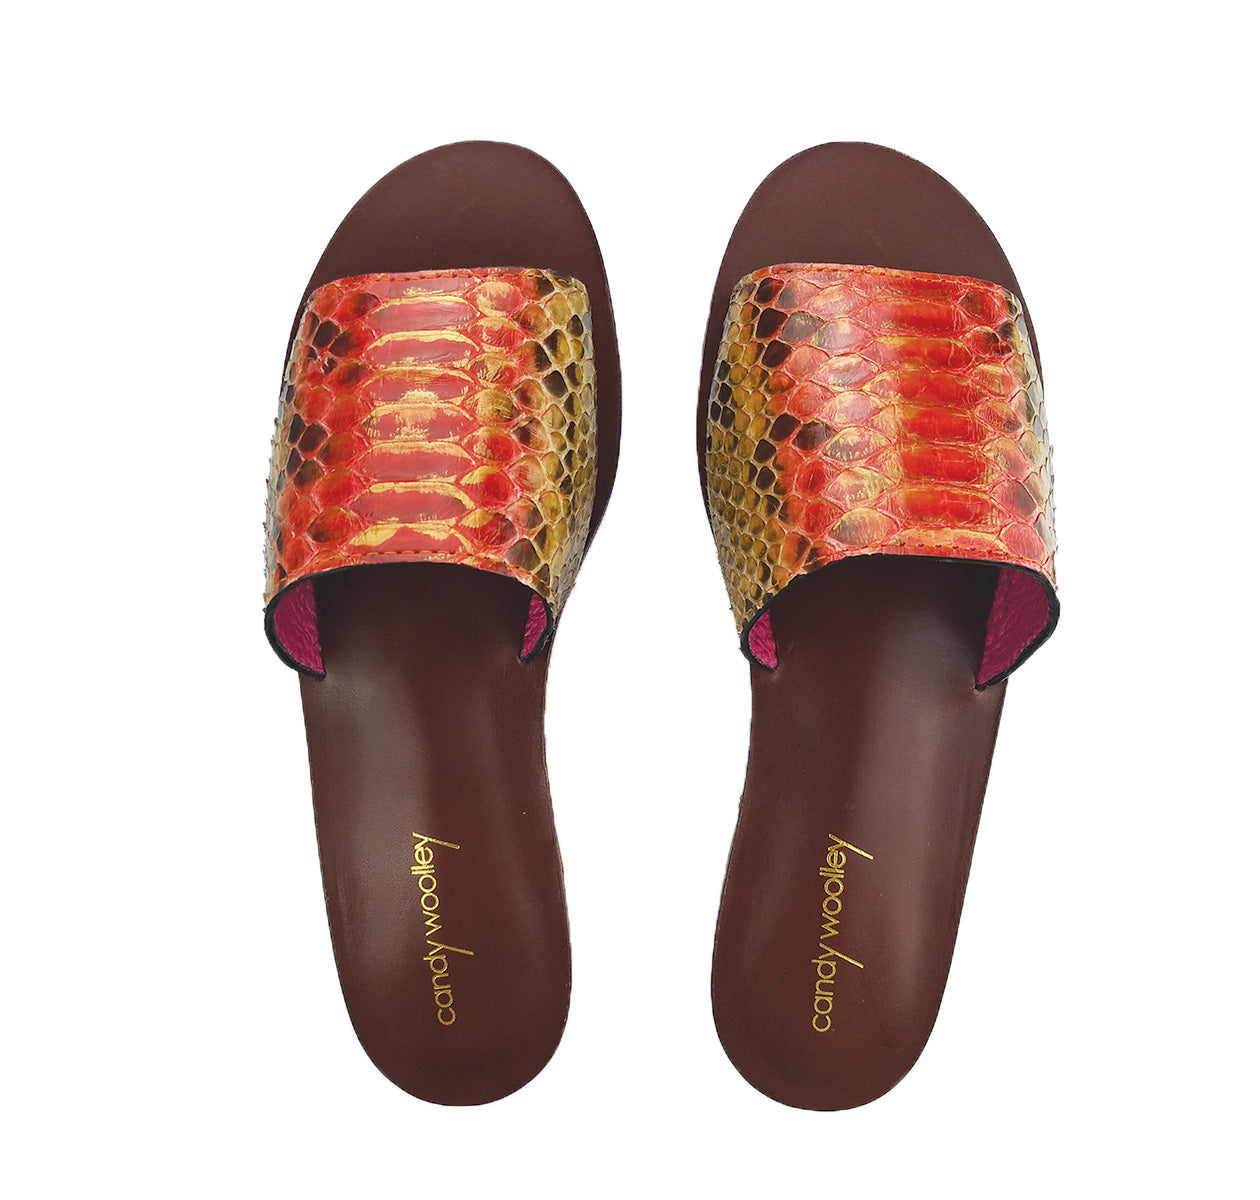 Genuine Python Orange and Gold Flat Slide Sandals. Size Available 8. [NEW: NON-SLIP & SOLE PROTECTOR]